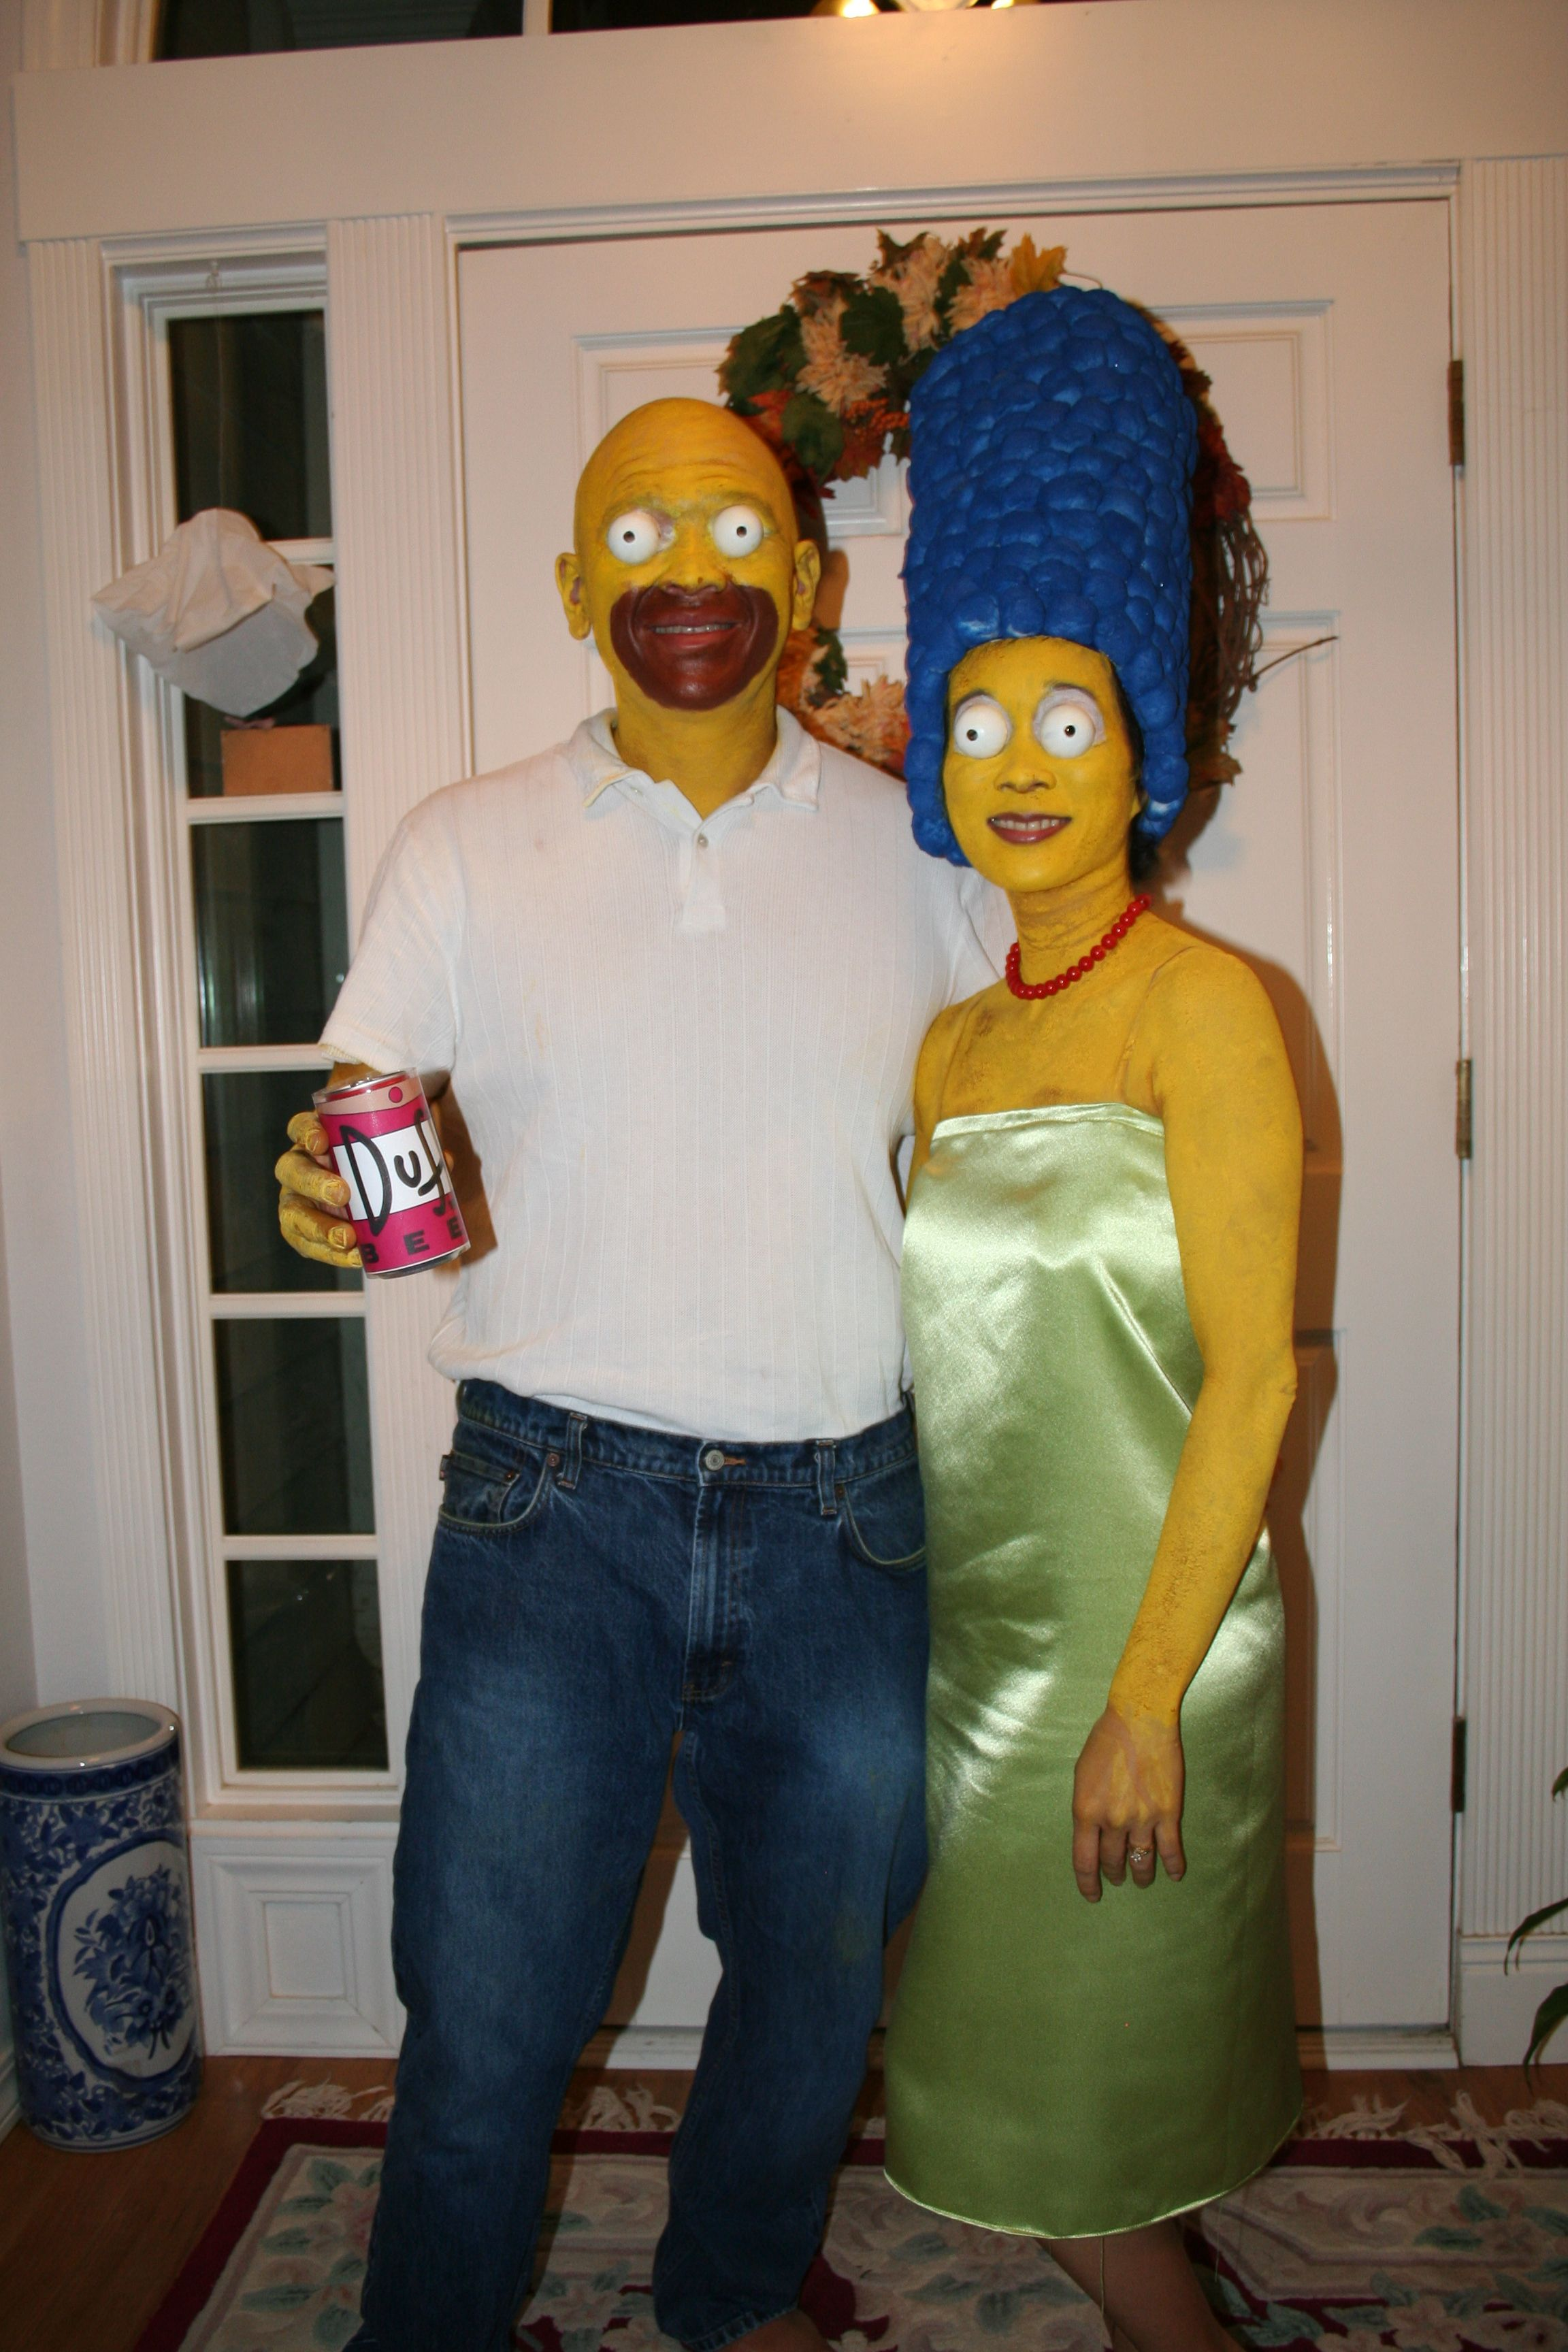 Marge and Homer Simpson#famous halloween couples costume  sc 1 st  Pinterest & Marge and Homer Simpson#famous halloween couples costume | Christmas ...